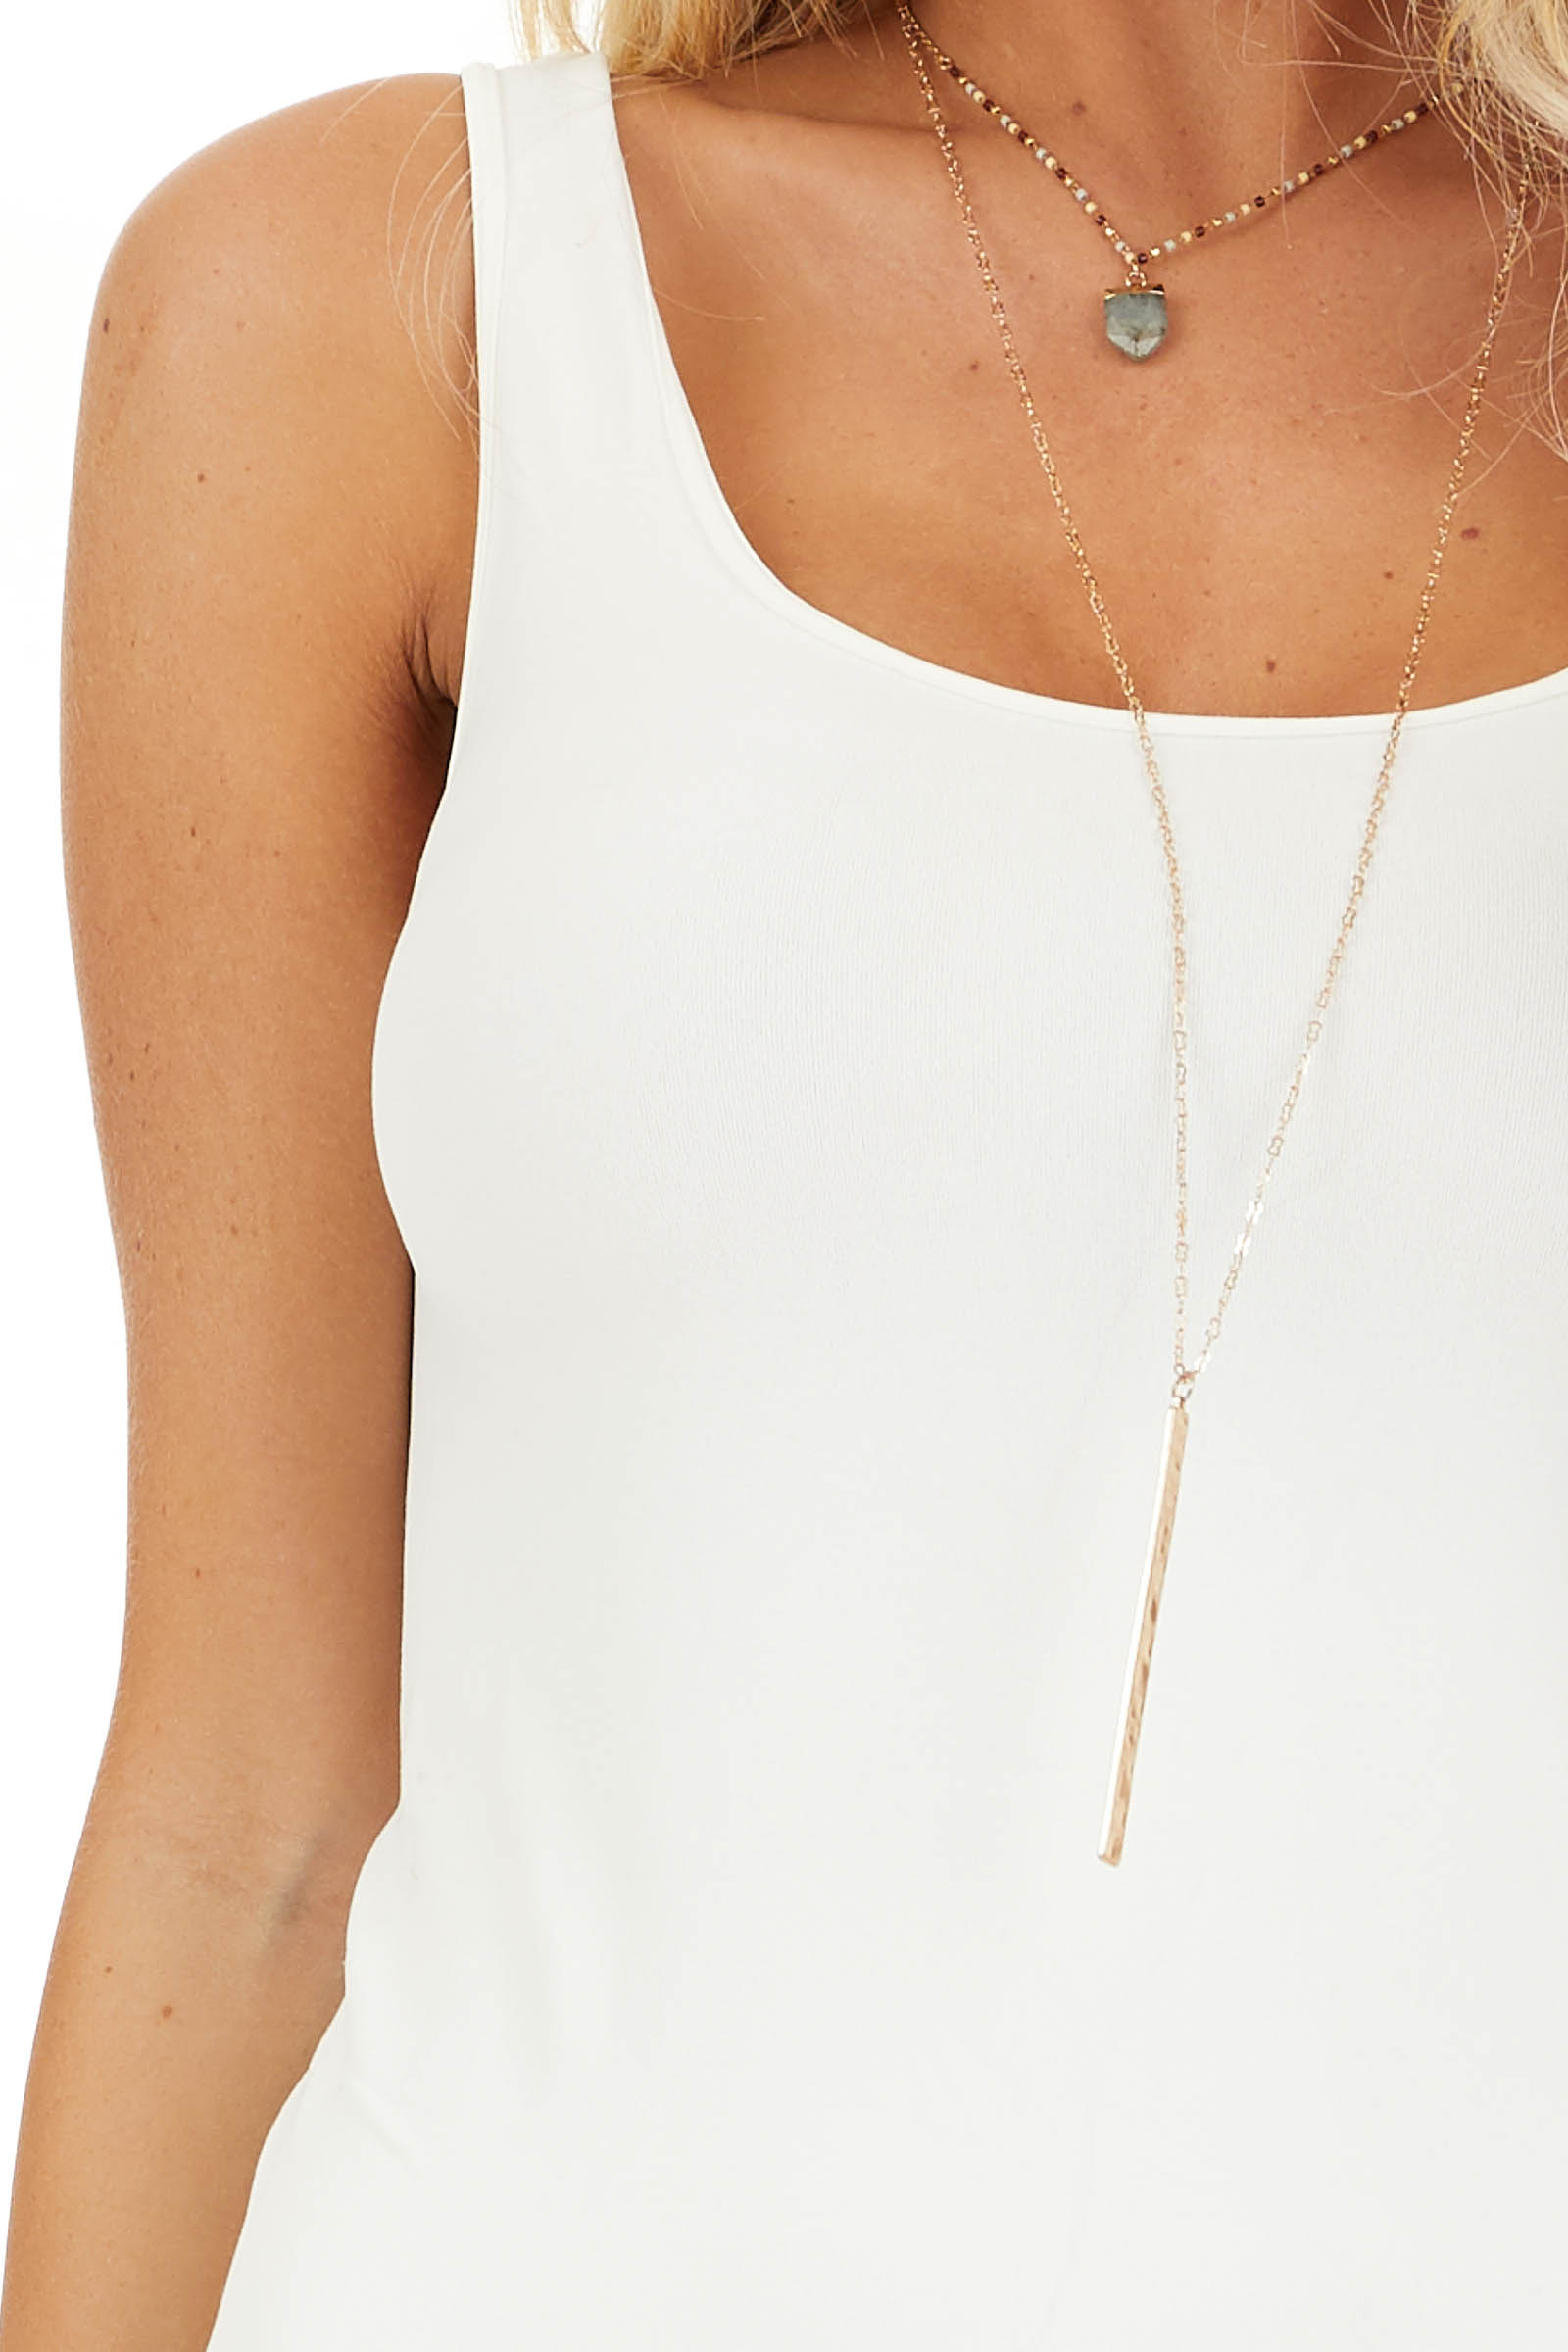 Ivory Seamless Tank Dress Undergarment detail